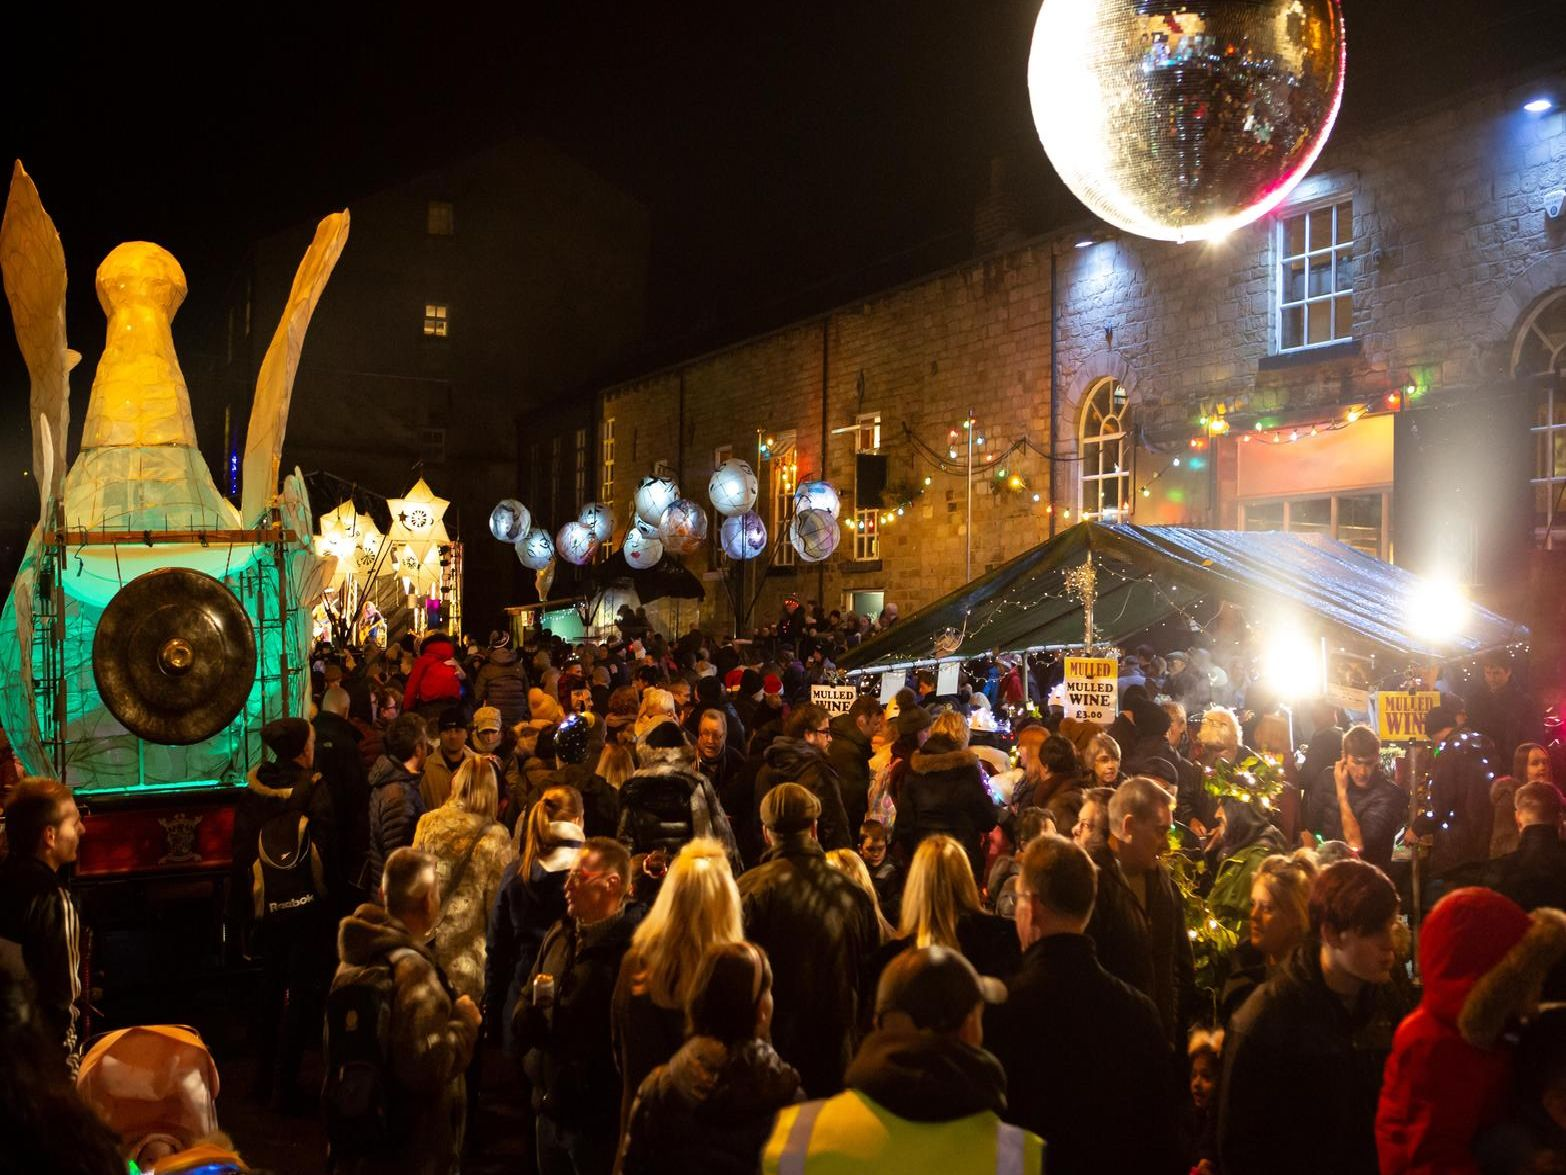 Nine of the best pictures from the Sowerby Bridge Winterlight festival